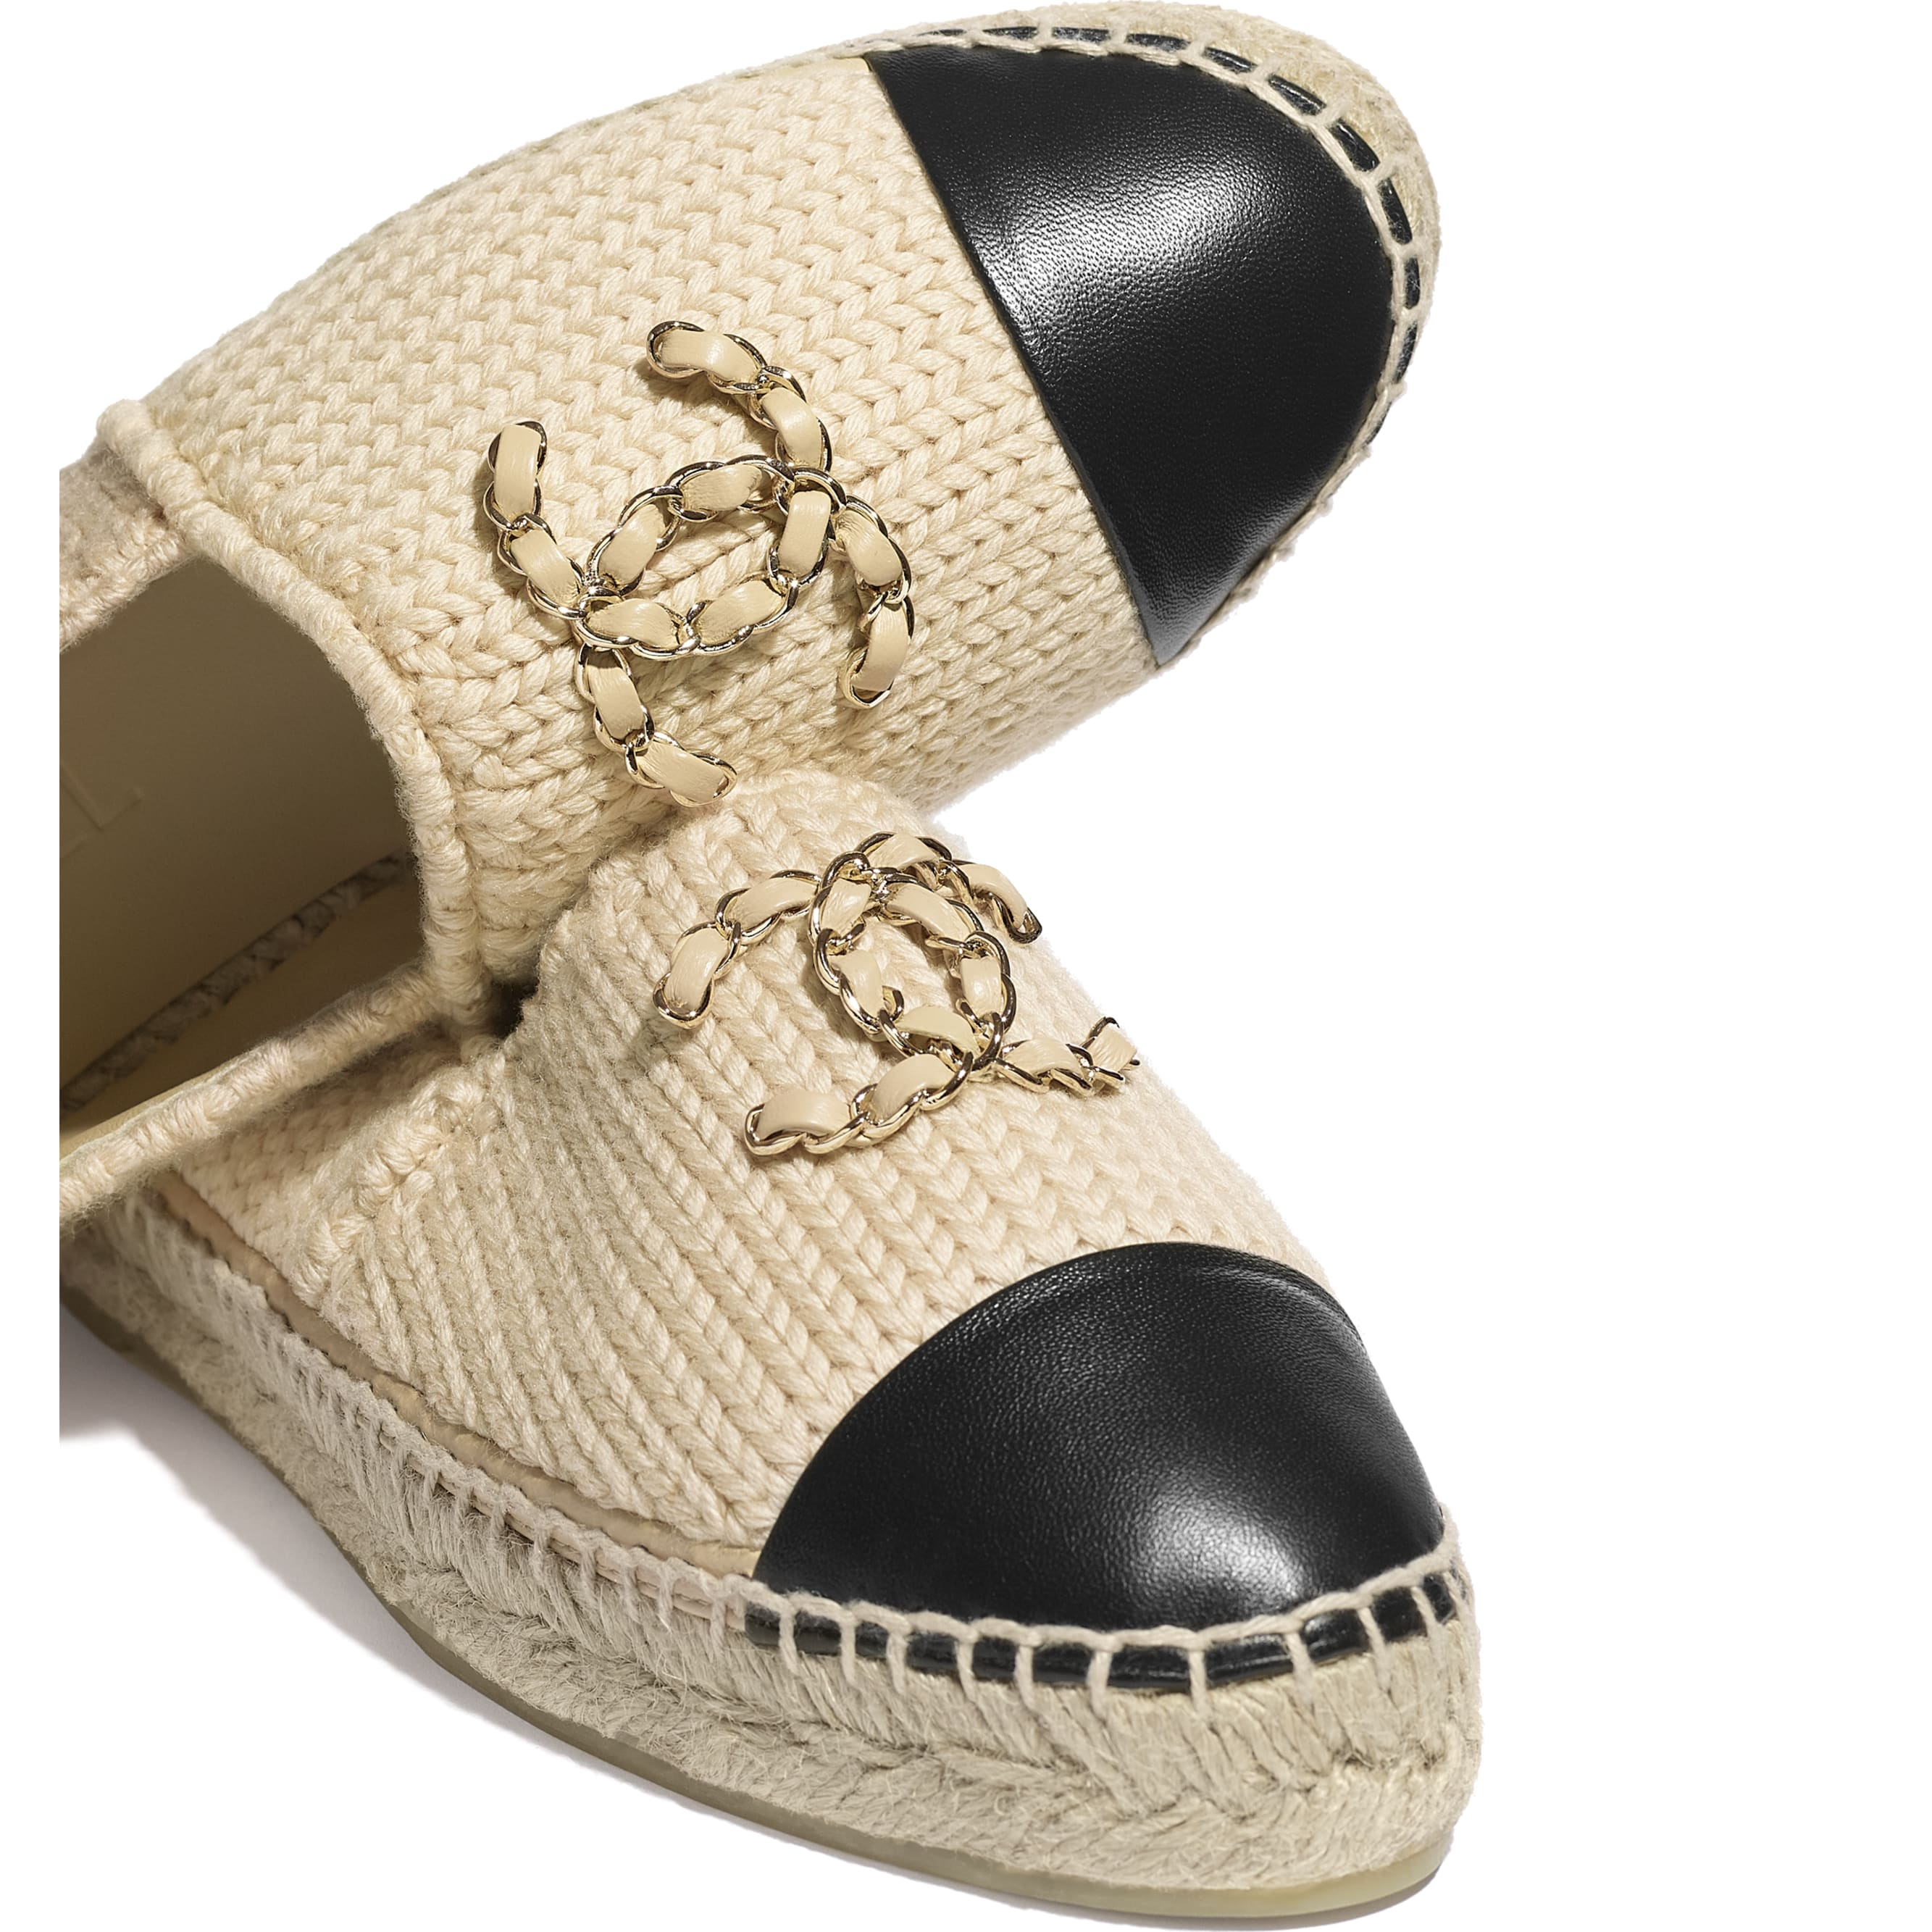 Espadrilles - Beige & Black - Knitted Wool & Lambskin - CHANEL - Extra view - see standard sized version